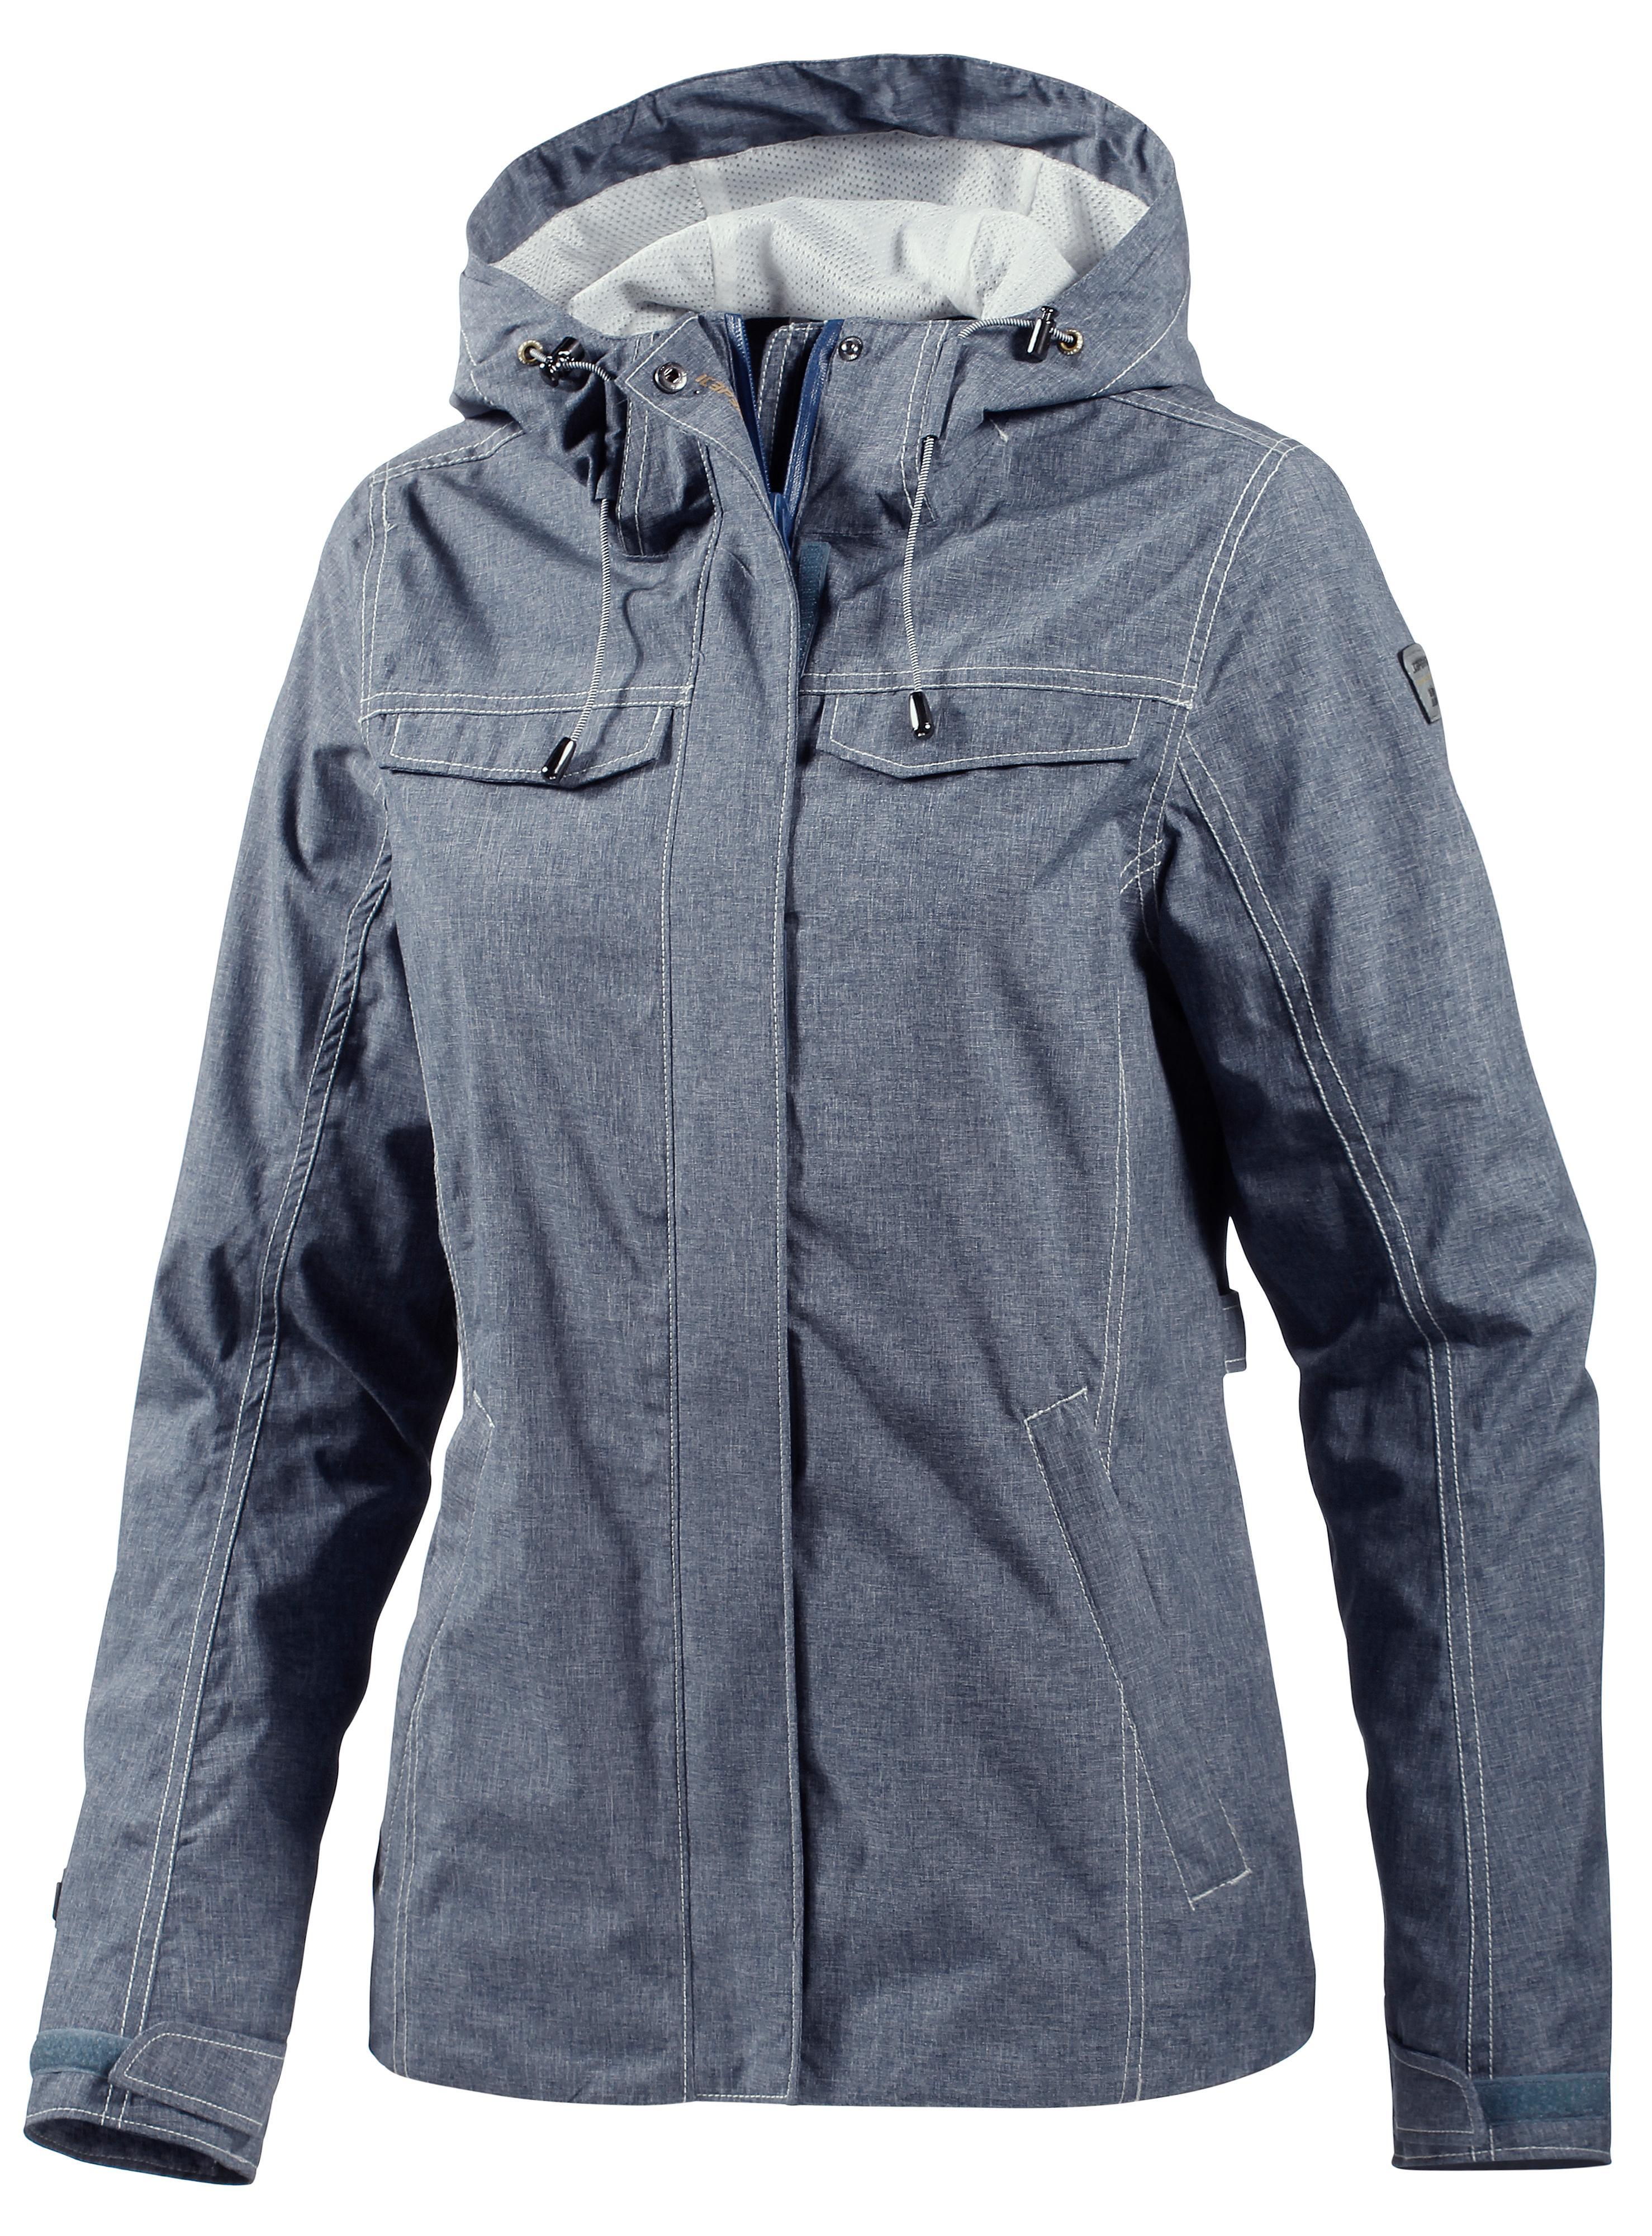 Outdoorjacke damen h&m